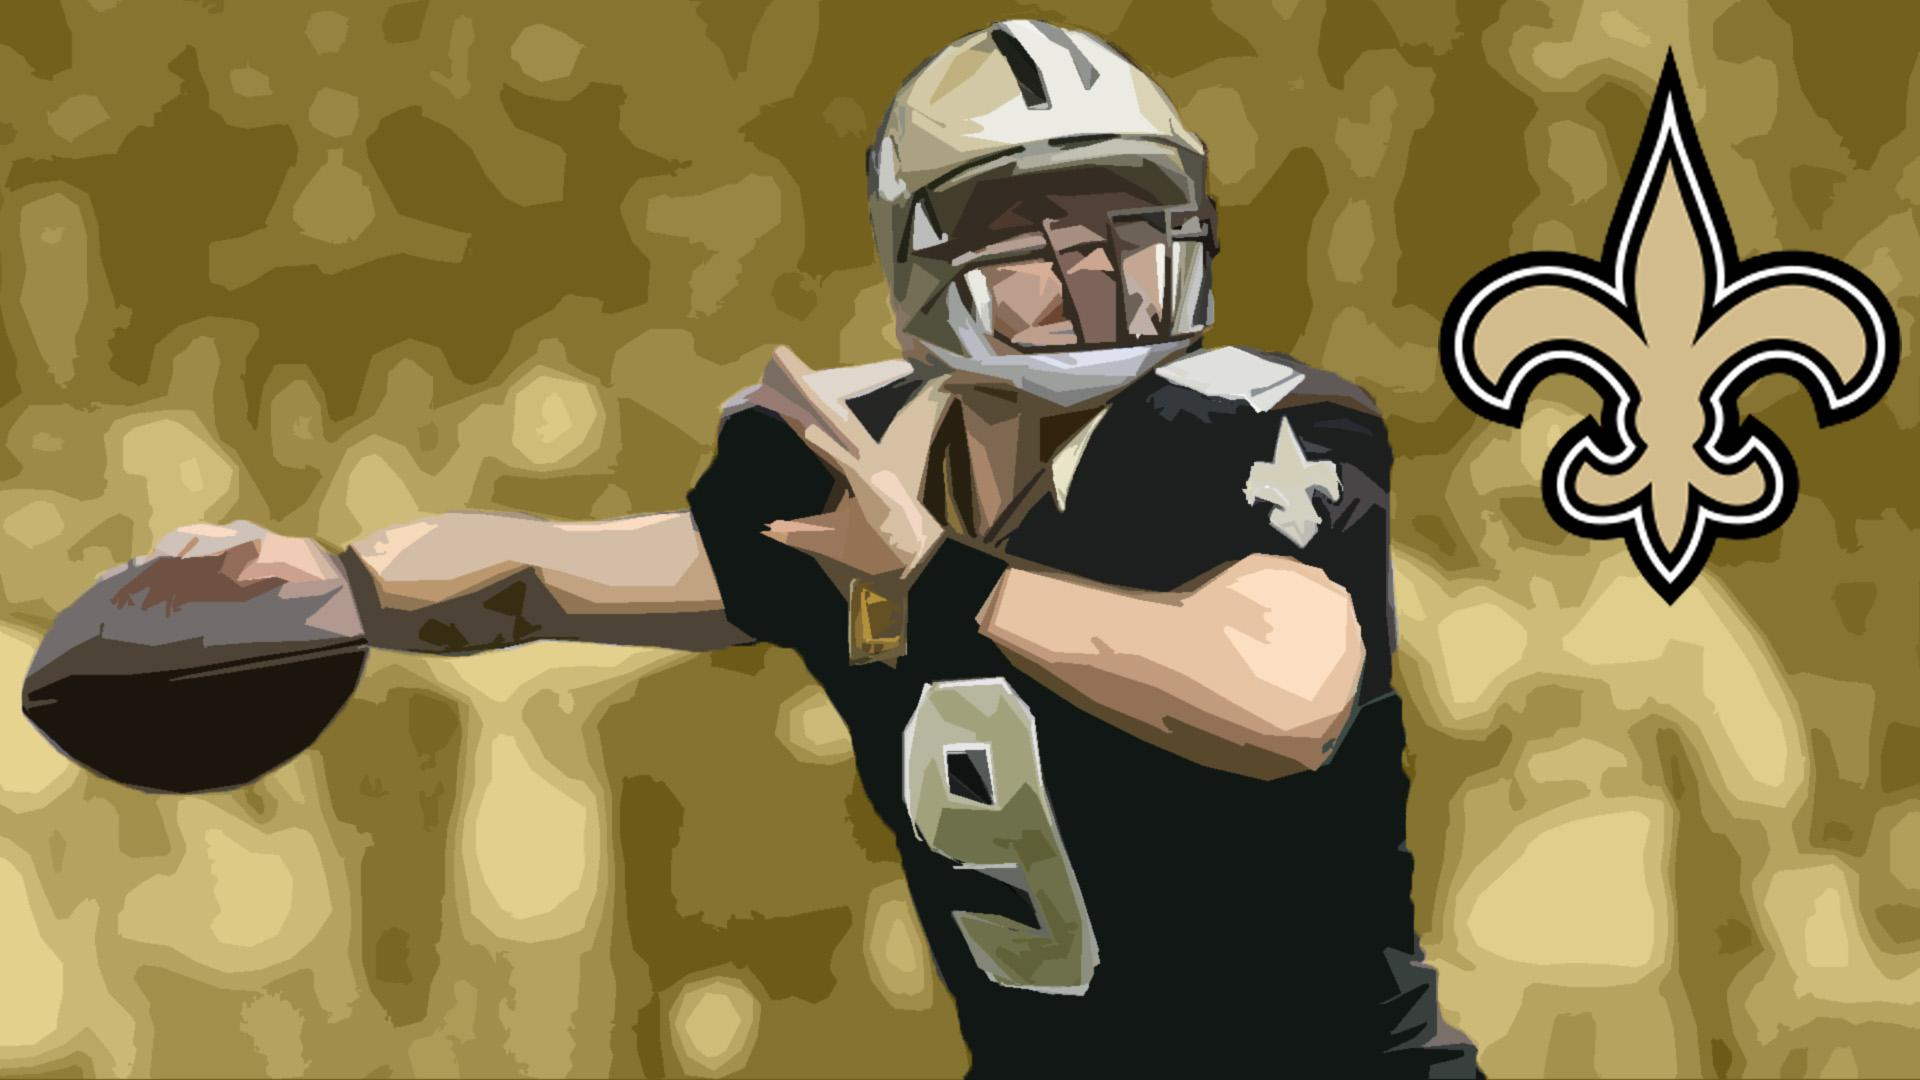 Wallpaper] Drew Brees Saints 1920x1080